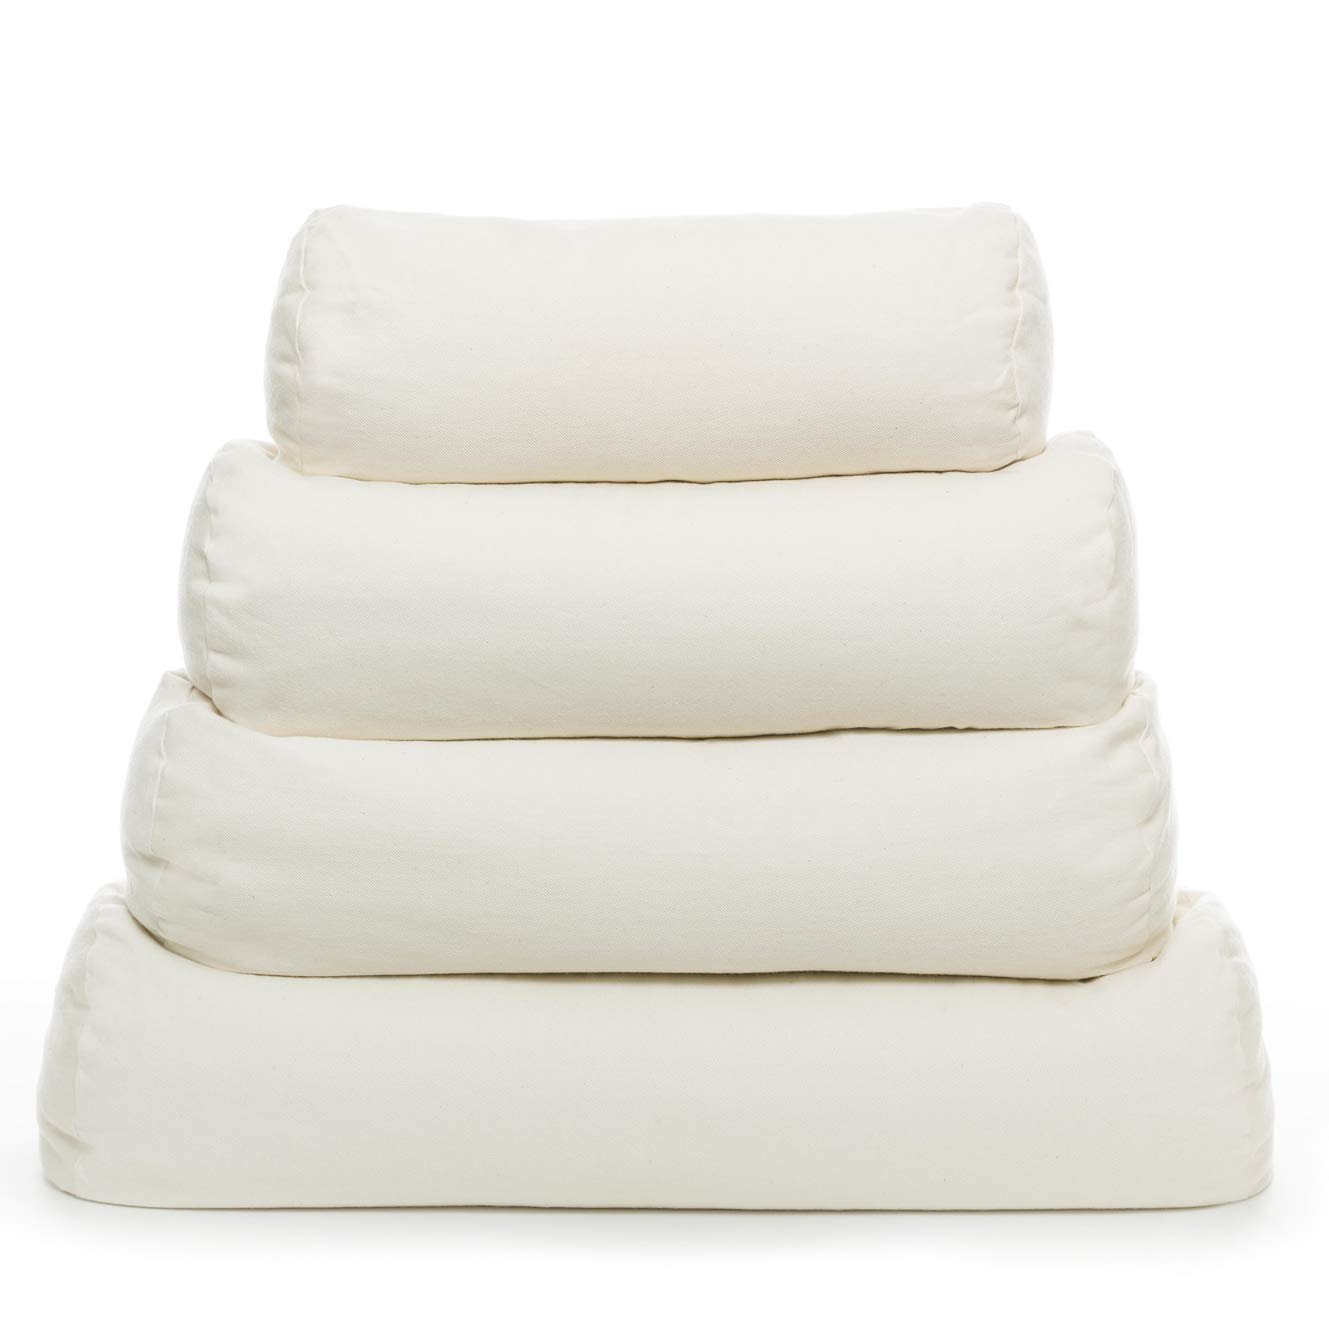 Comfy Neck Side Sleeper Buckwheat Hull Pillow with Pillowcase - Large (19'' x 7'') - Made in USA